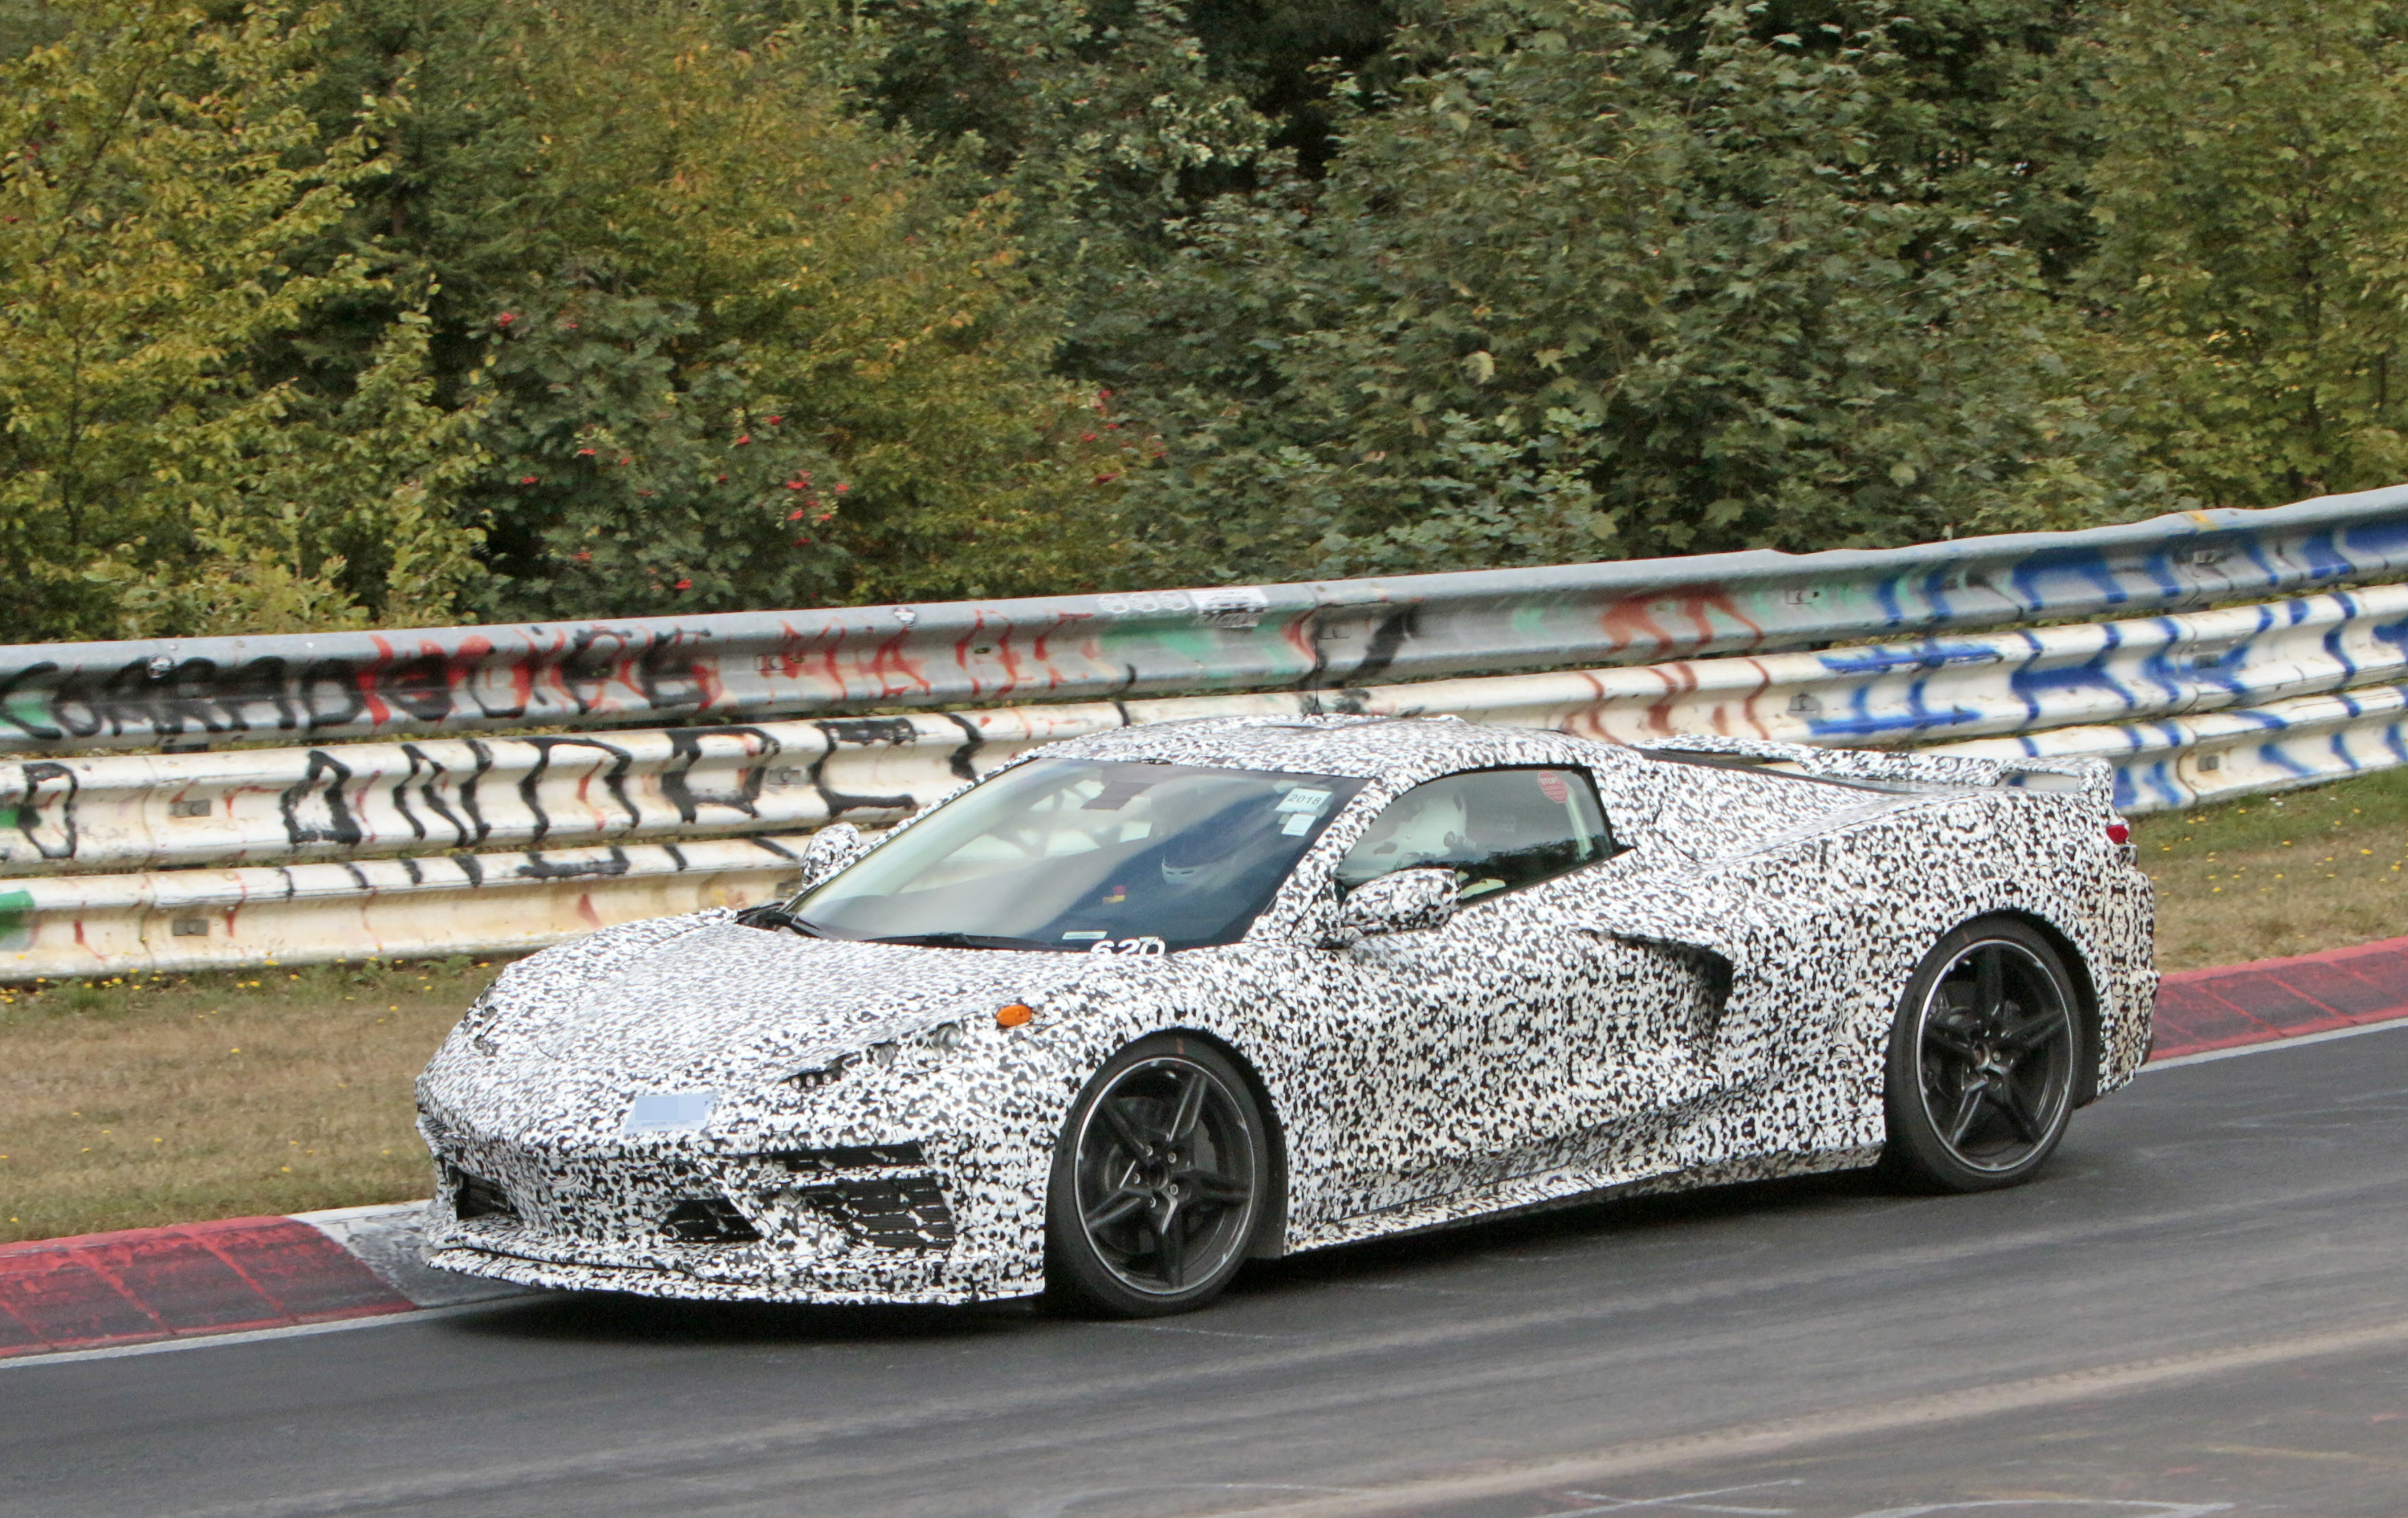 Chevy Says It S Not Bringing The 2020 C8 Corvette To The Detroit